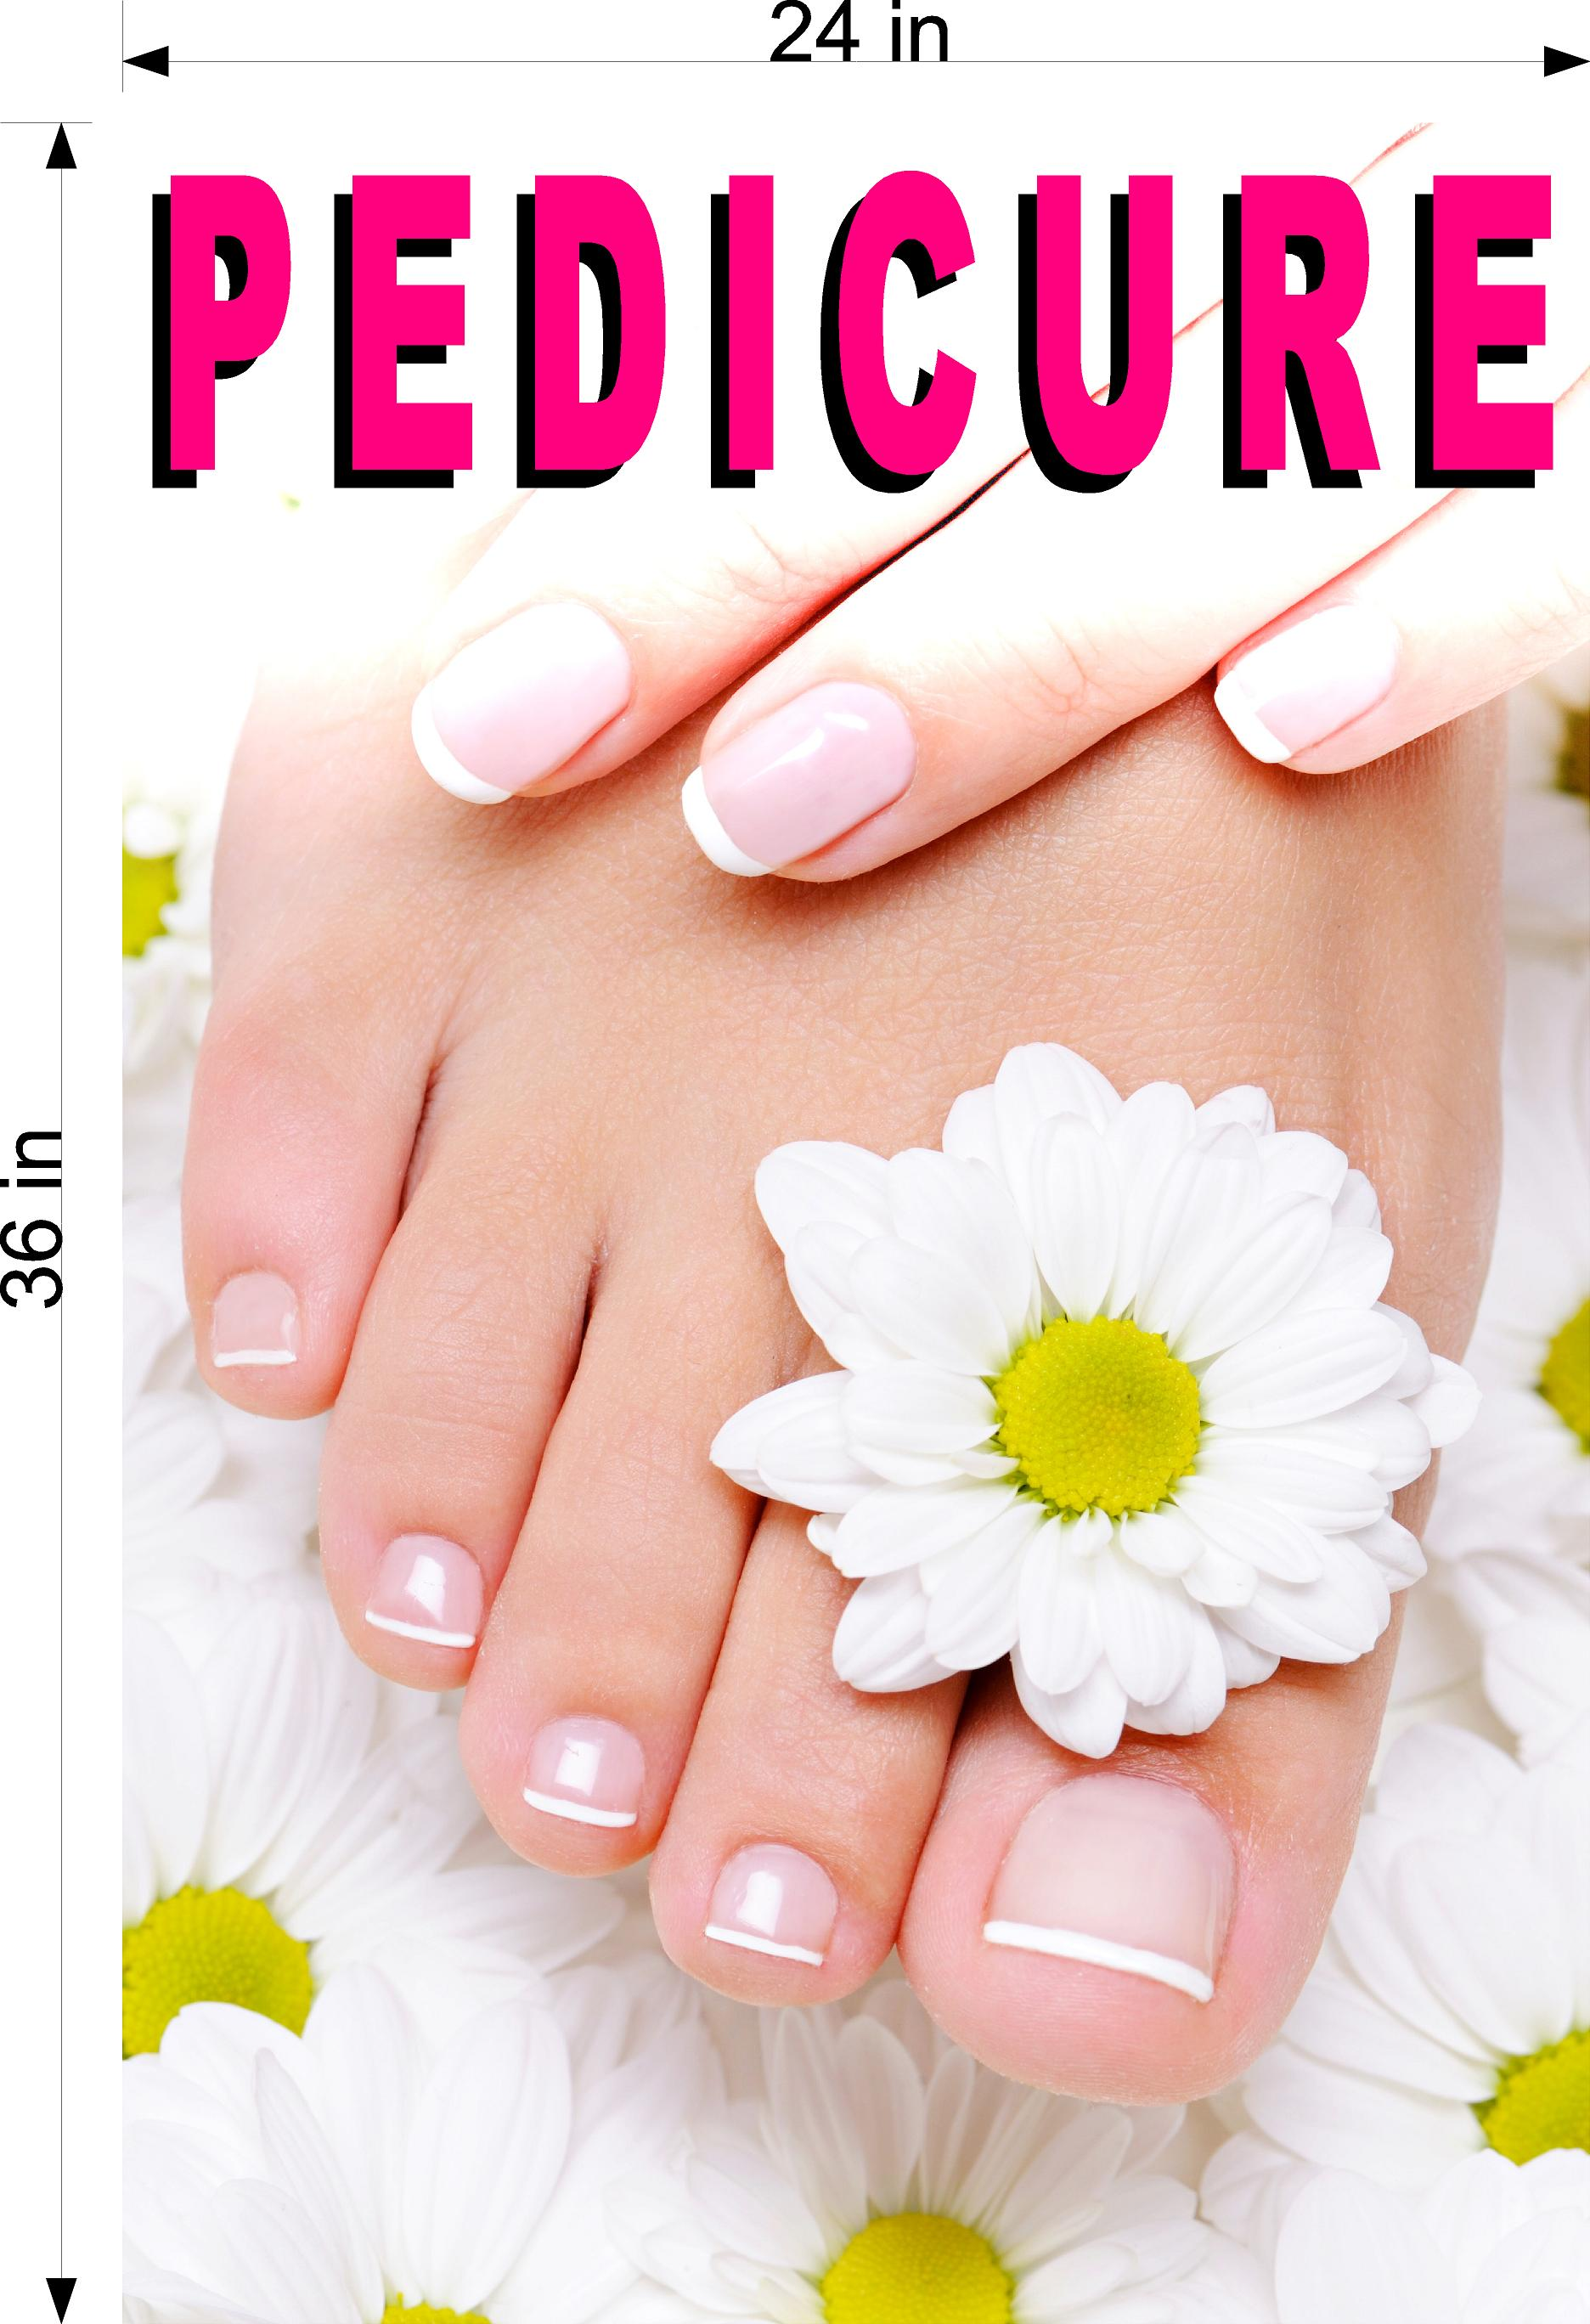 Pedicure 06 Perforated Mesh One Way Vision See-Through Window Vinyl Nail Salon Sign Vertical